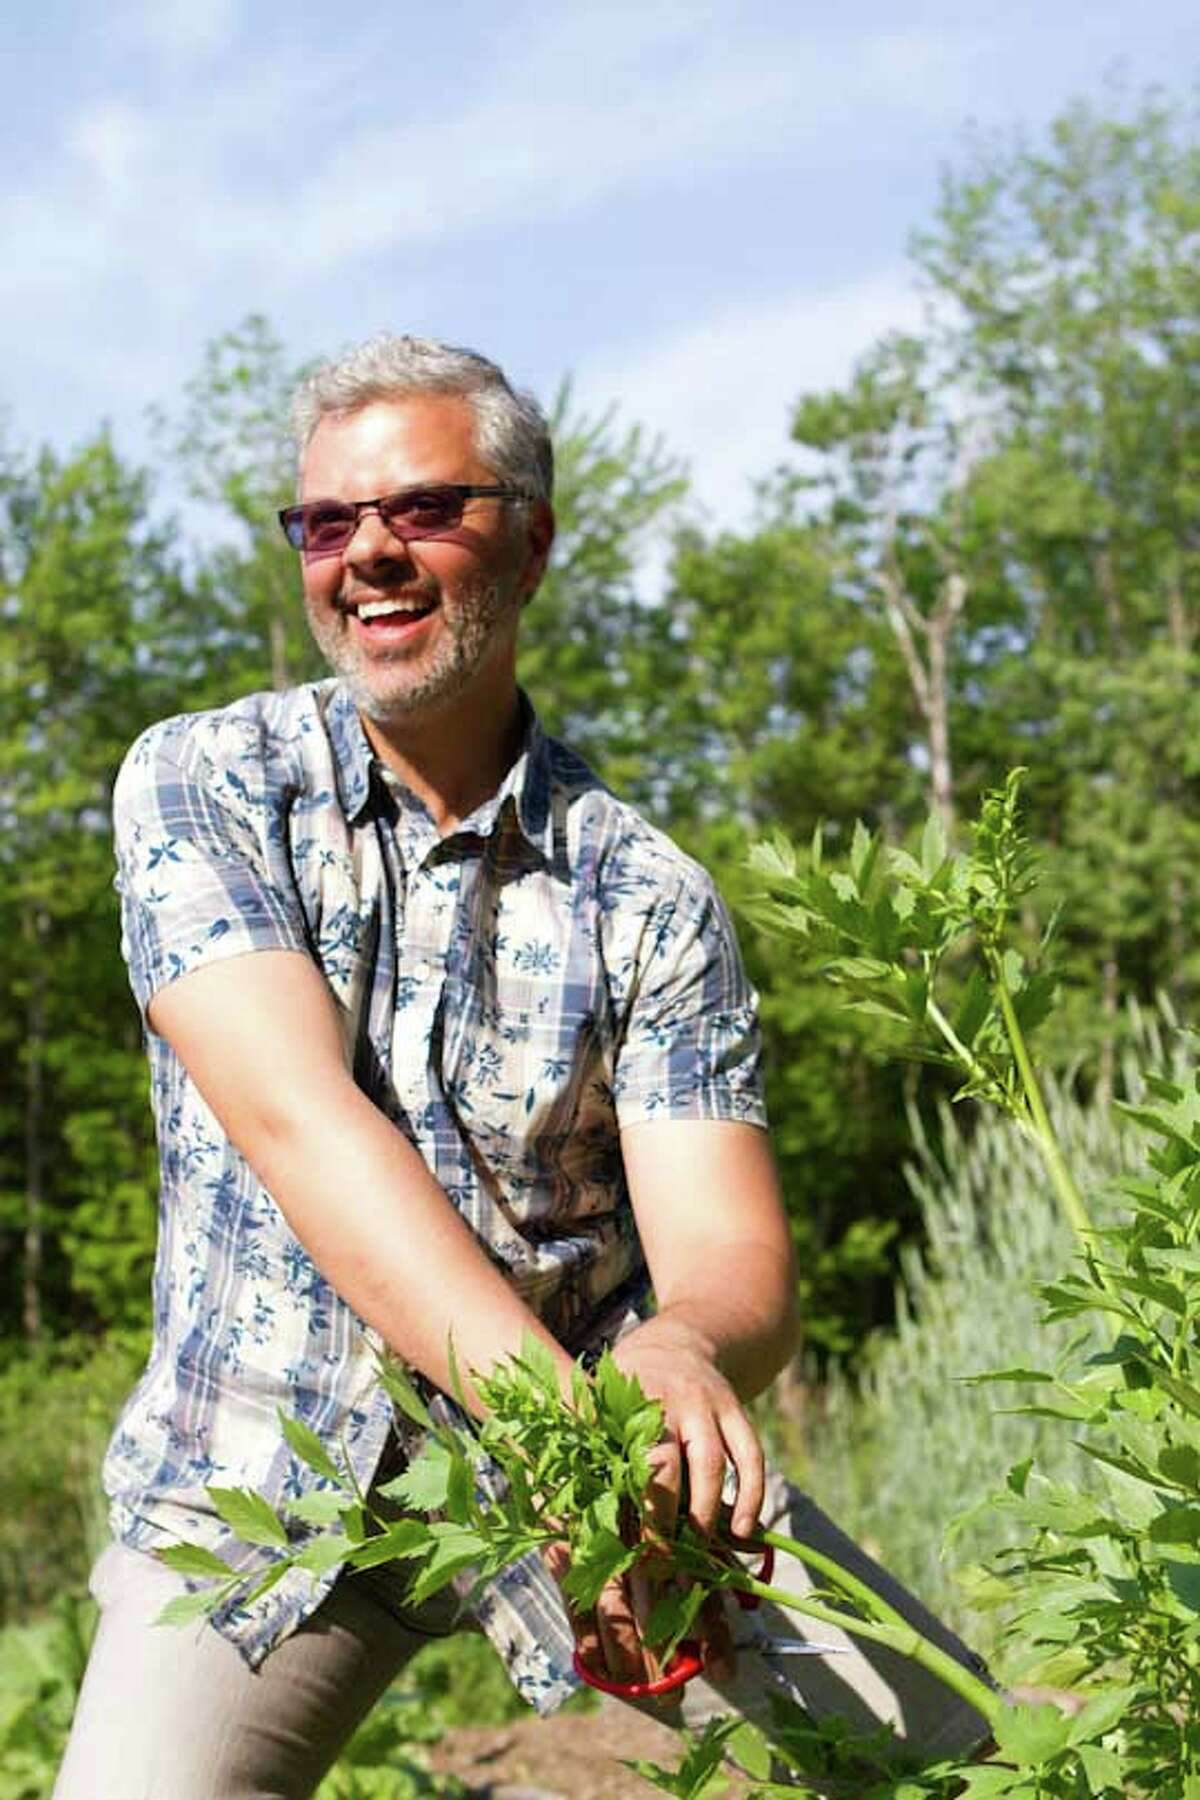 Joe Yonan, author of Eat Your Vegetables: Bold Recipes for the Single Cook